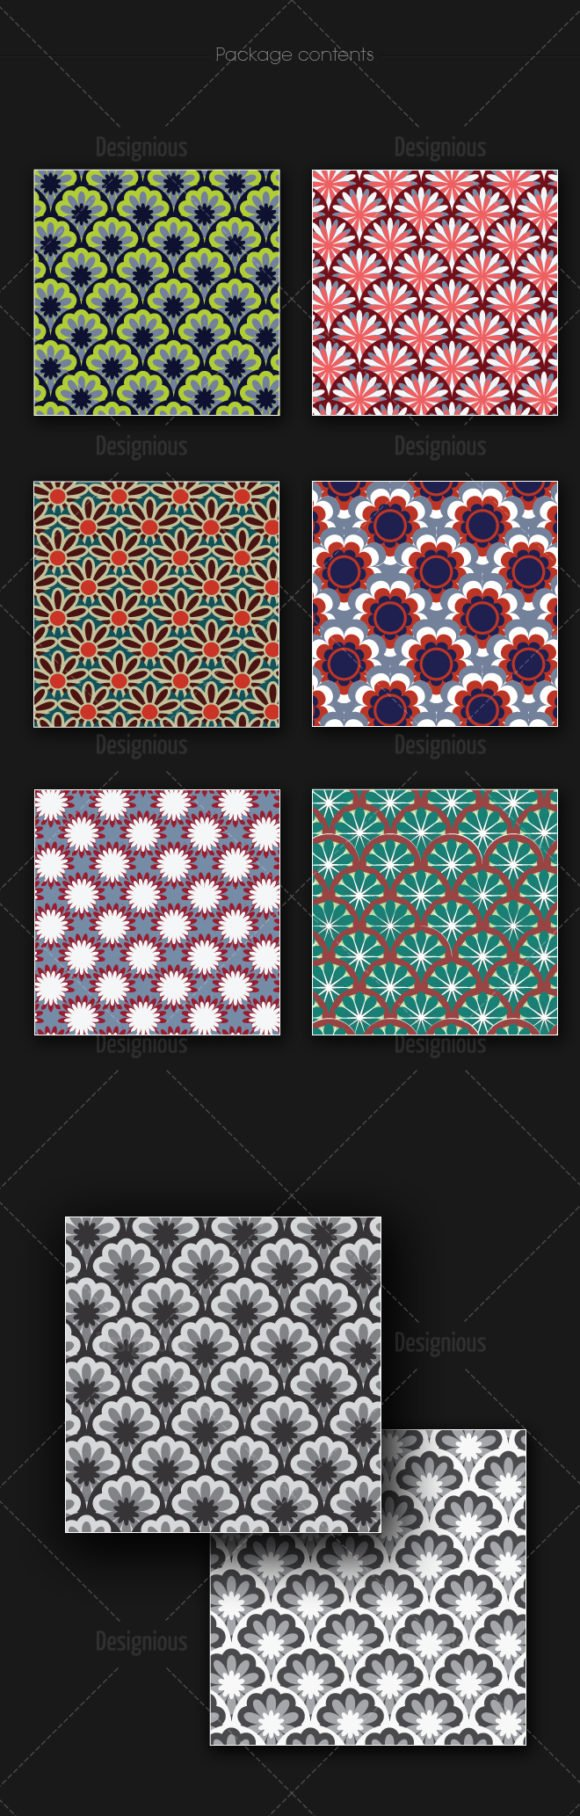 Seamless Patterns Vector Pack 164 2